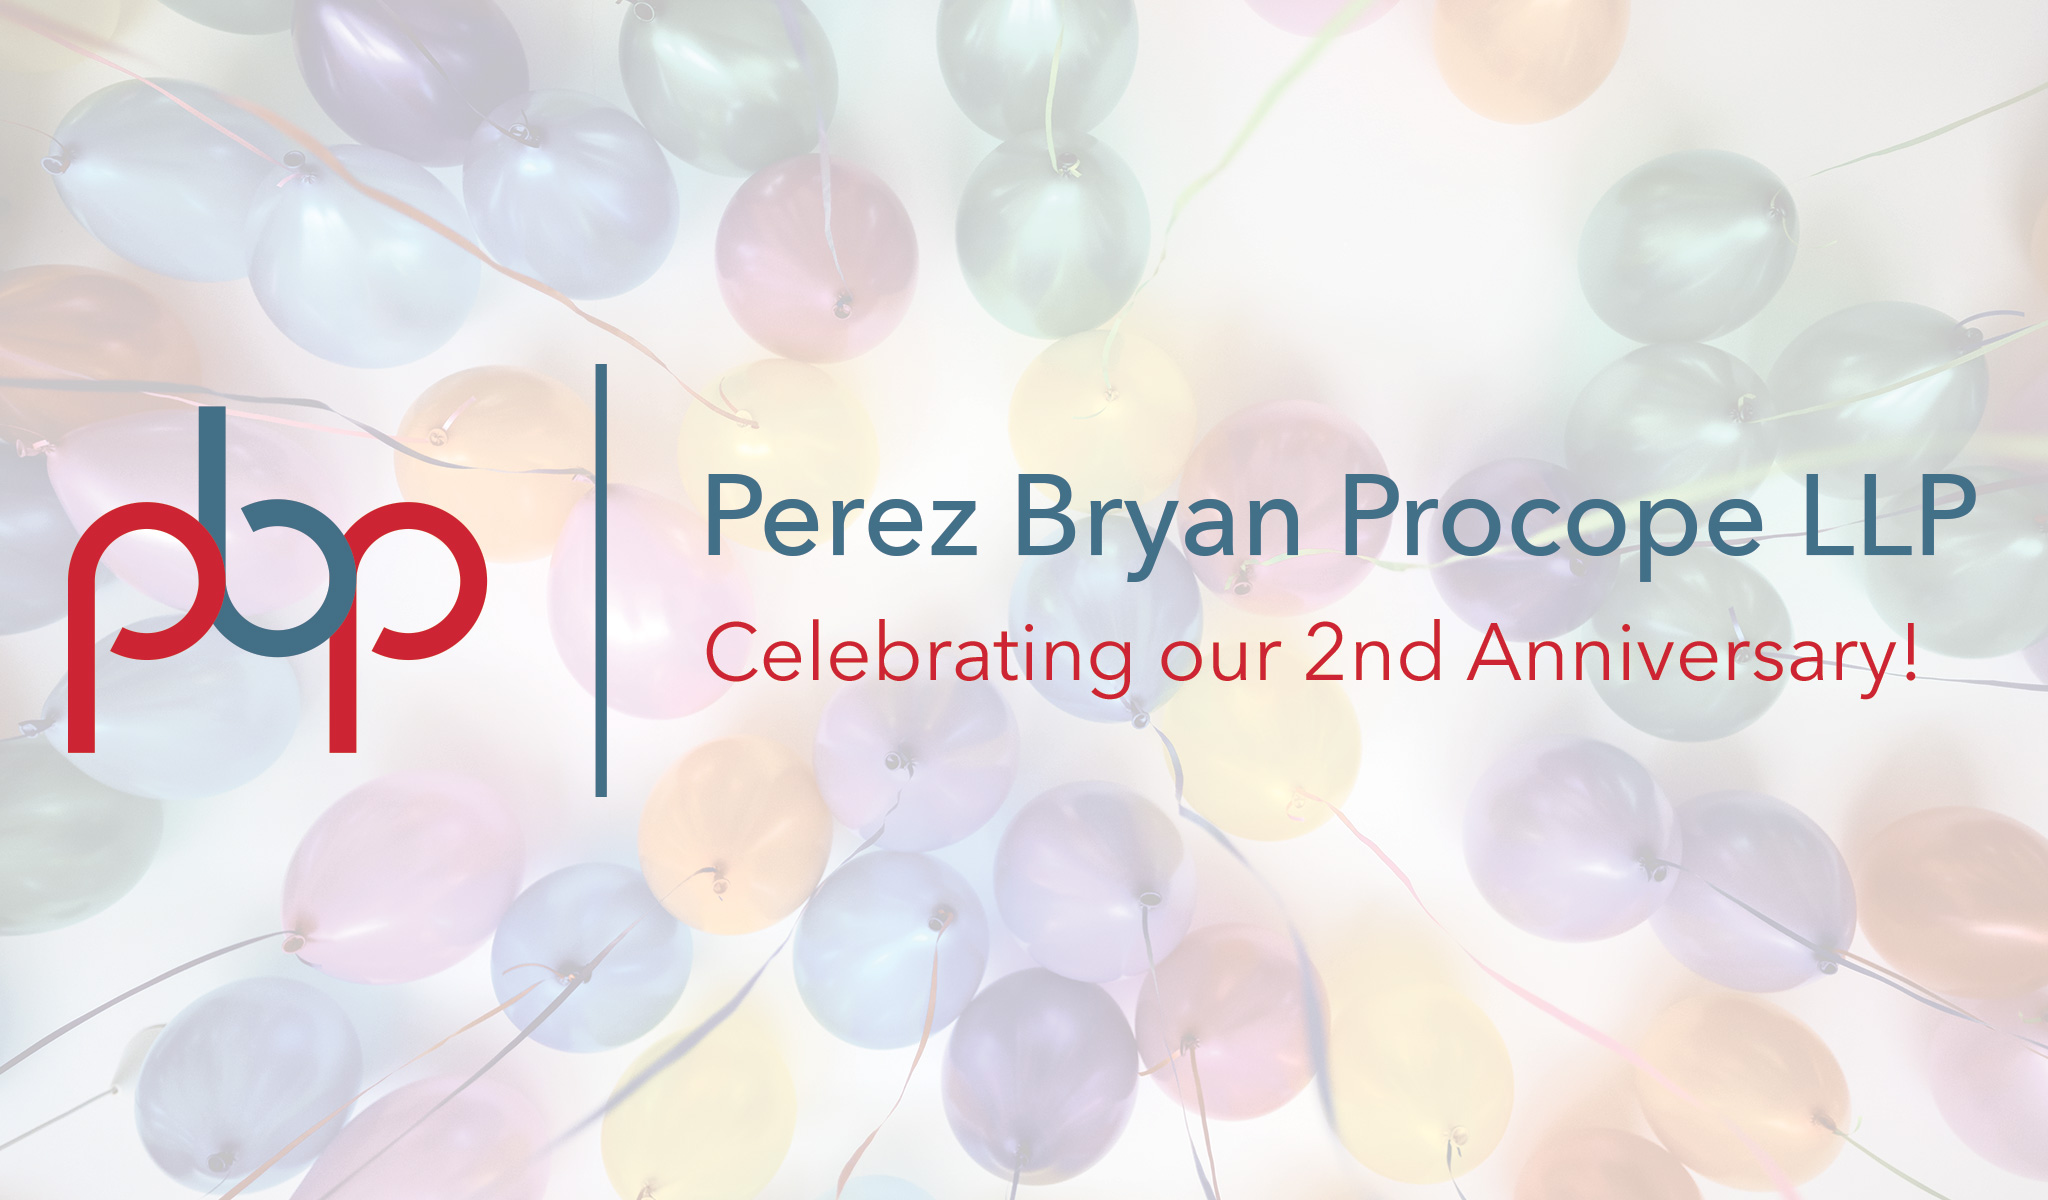 PBP Lawyers Anniversary Balloons